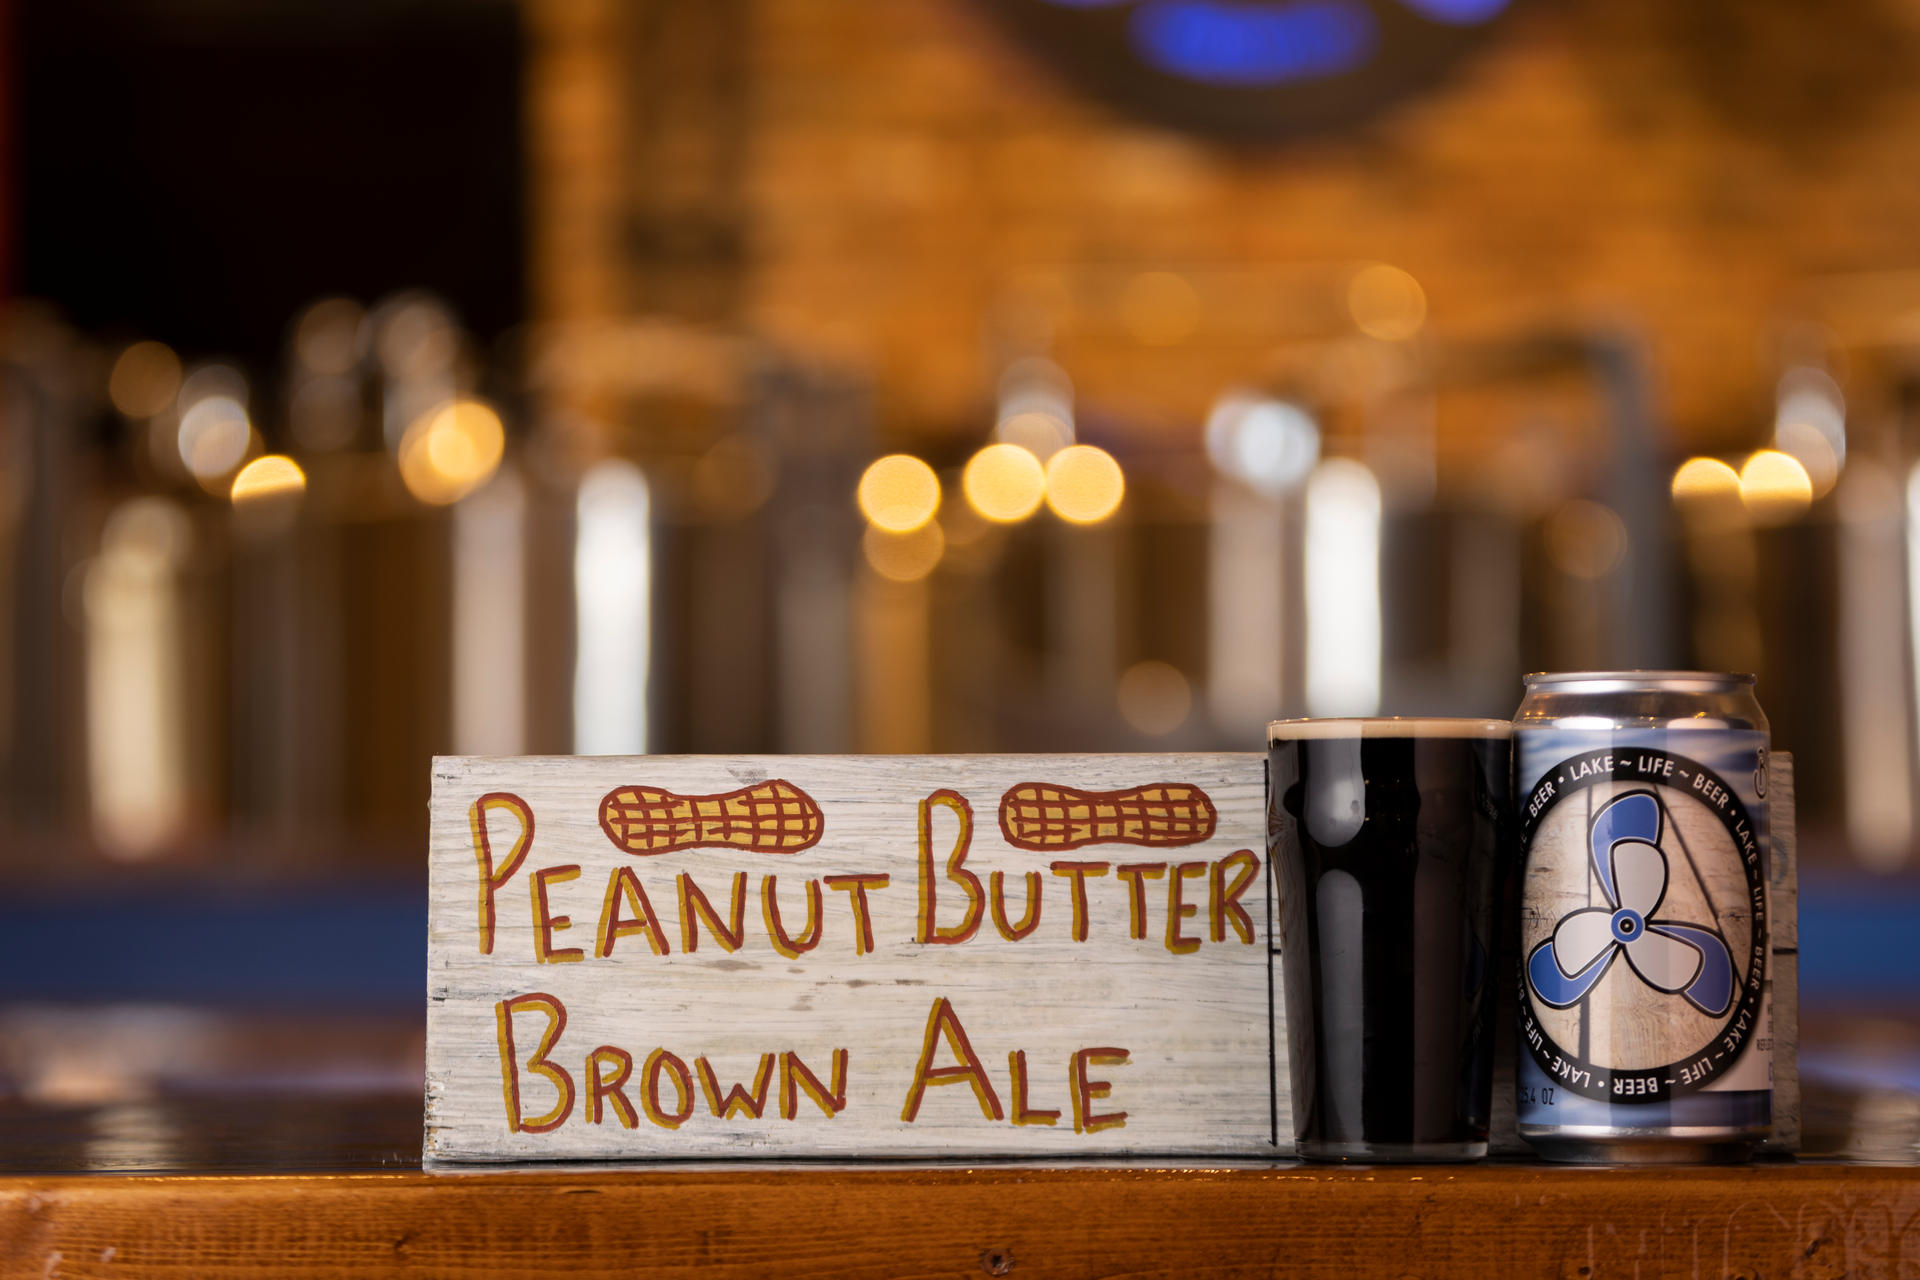 Peanut Butter - Brown Ale